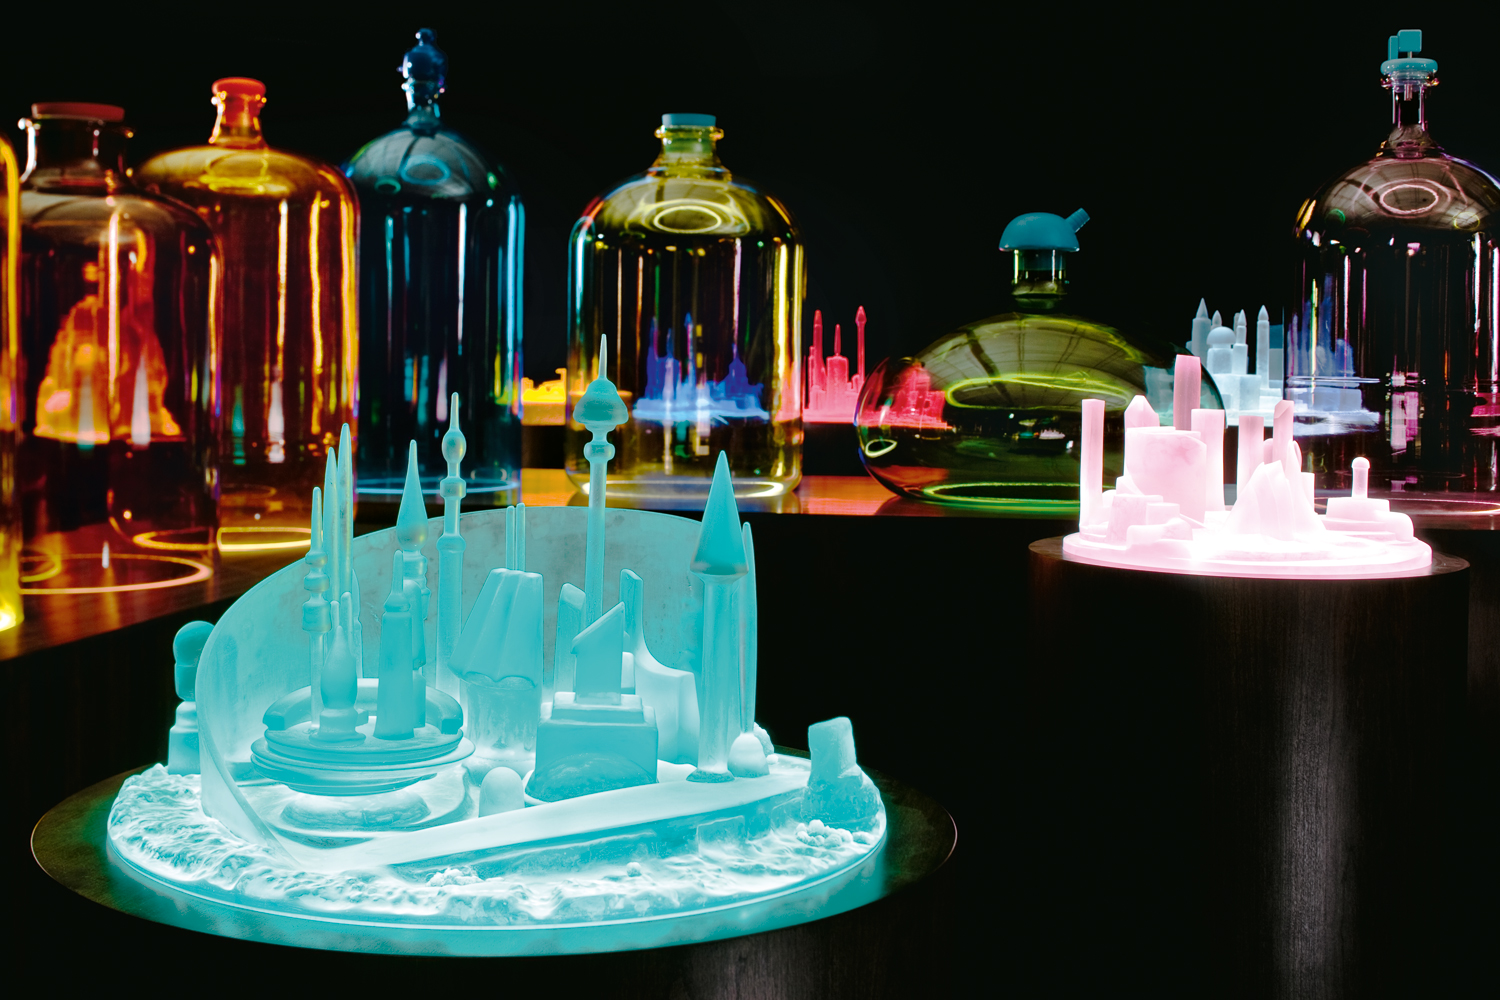 Mike Kelley's Kandor series